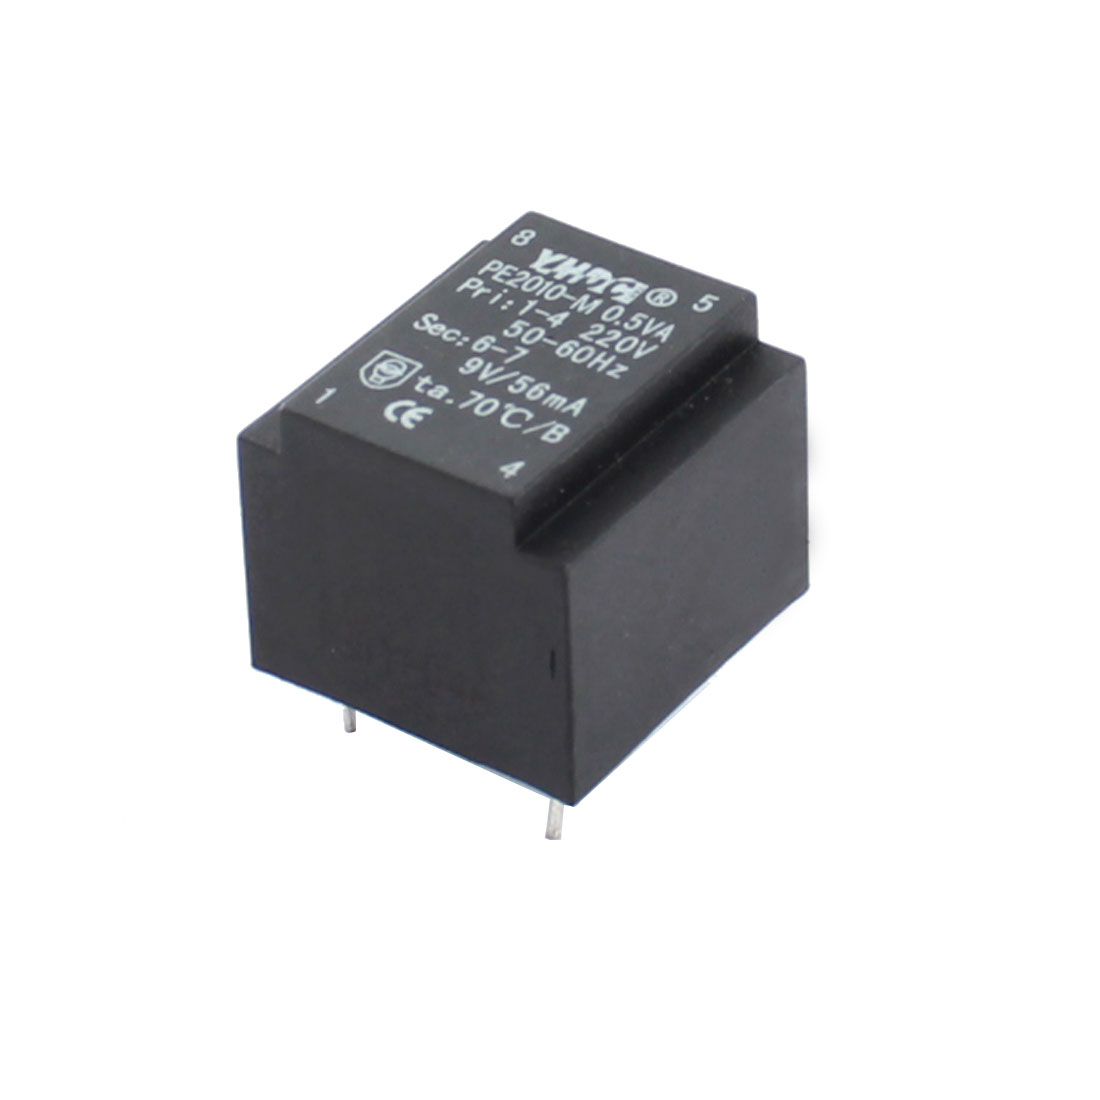 PE2010-M Primary Work Voltage AC220V 0.5VA Single Way Output Miniature Power Encapsulated transformer